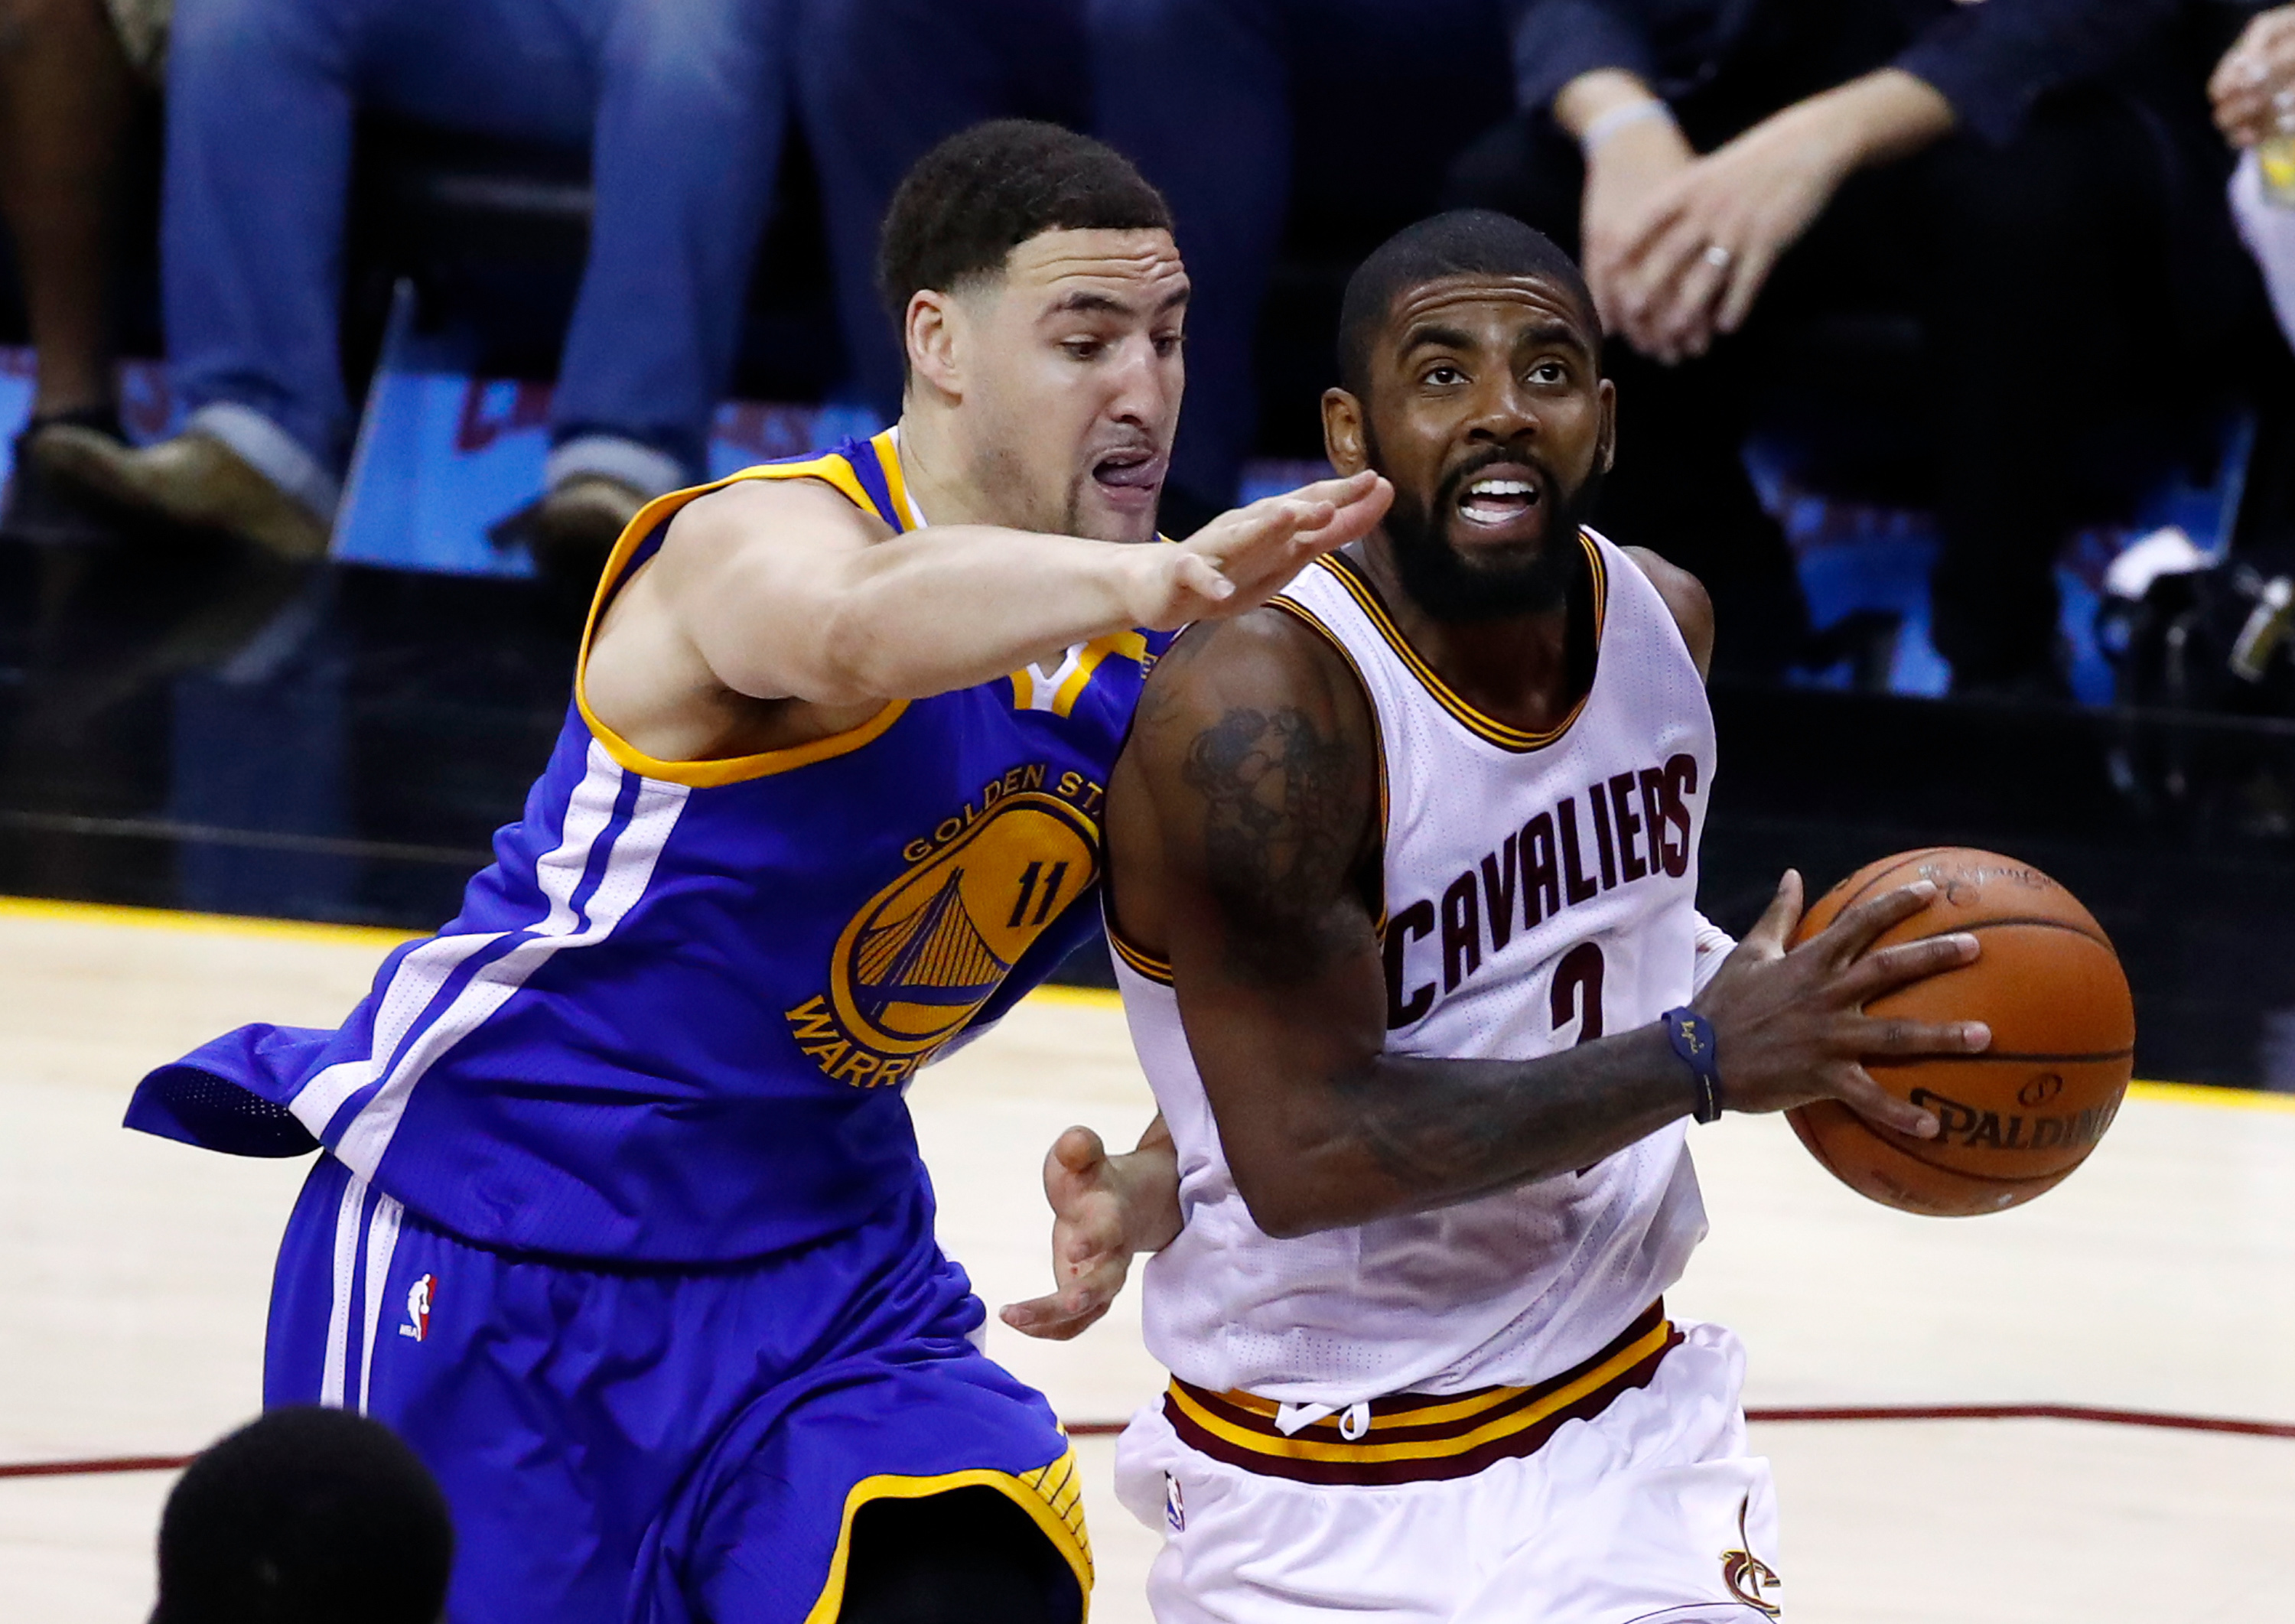 The Cavaliers Called The Warriors About Trading Kyrie Irving For Klay Thompson